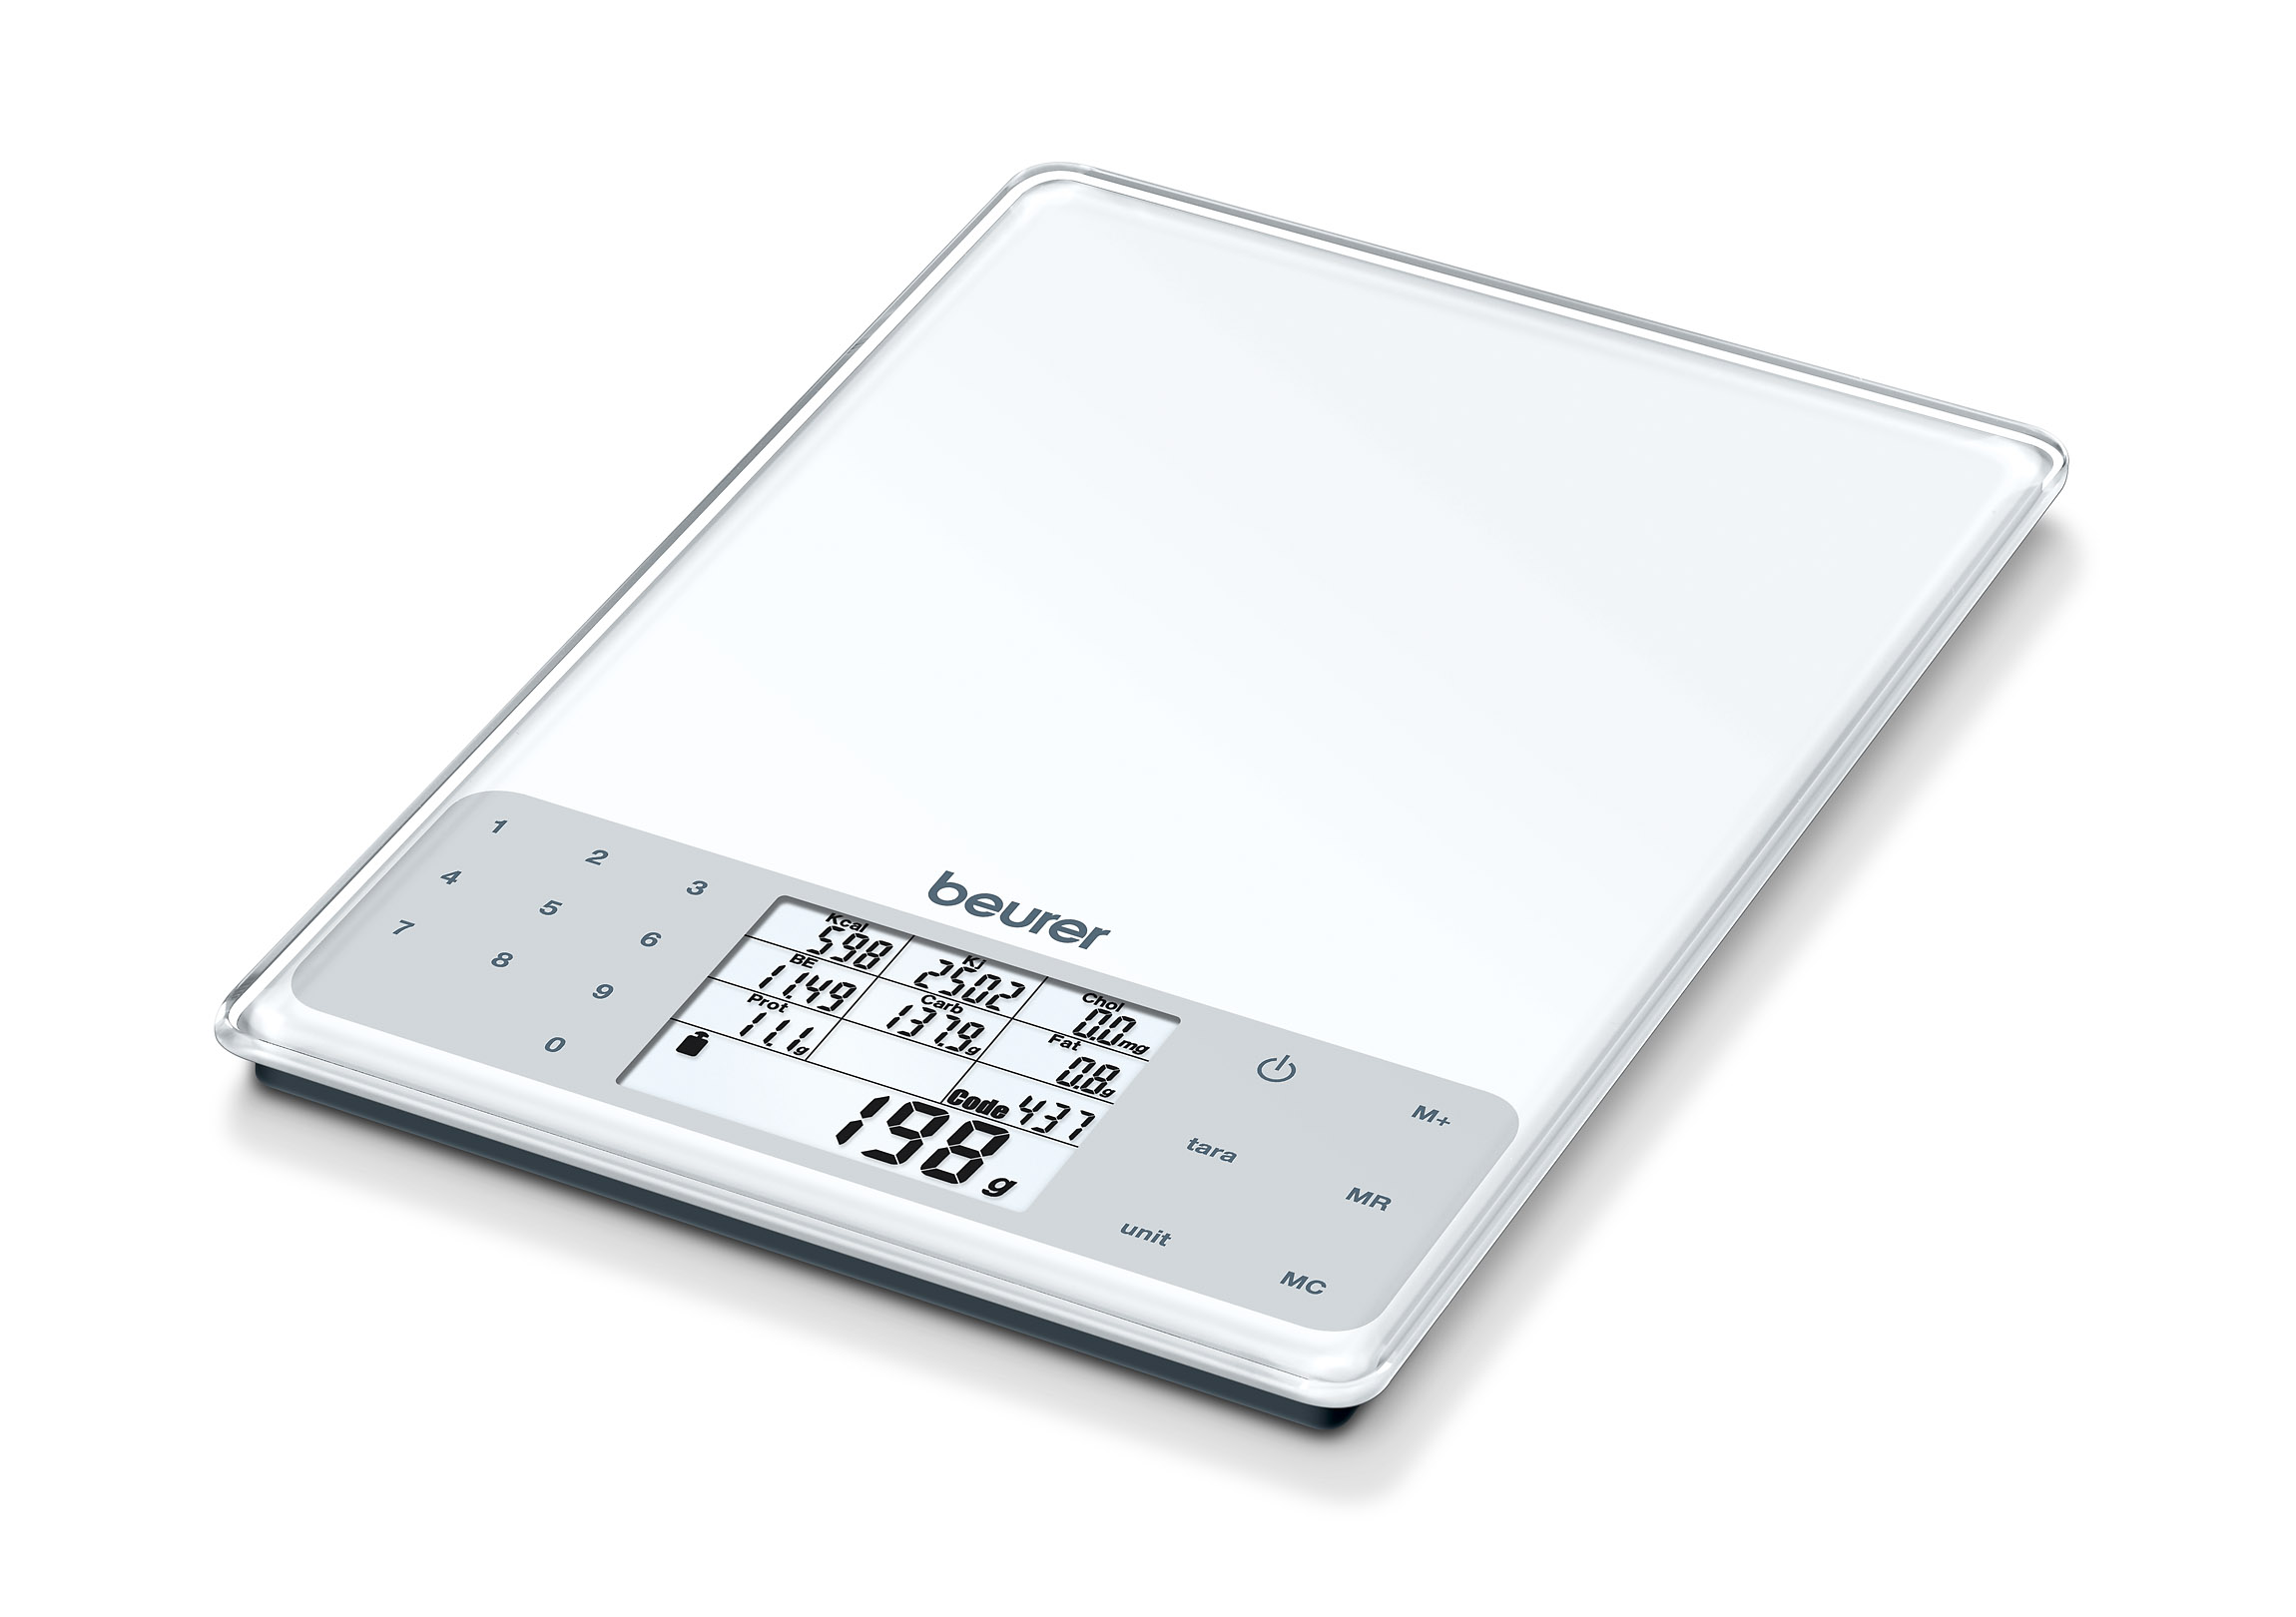 Beurer - DS 61 Nutritional Analysis Scale - 5 Years Warranty